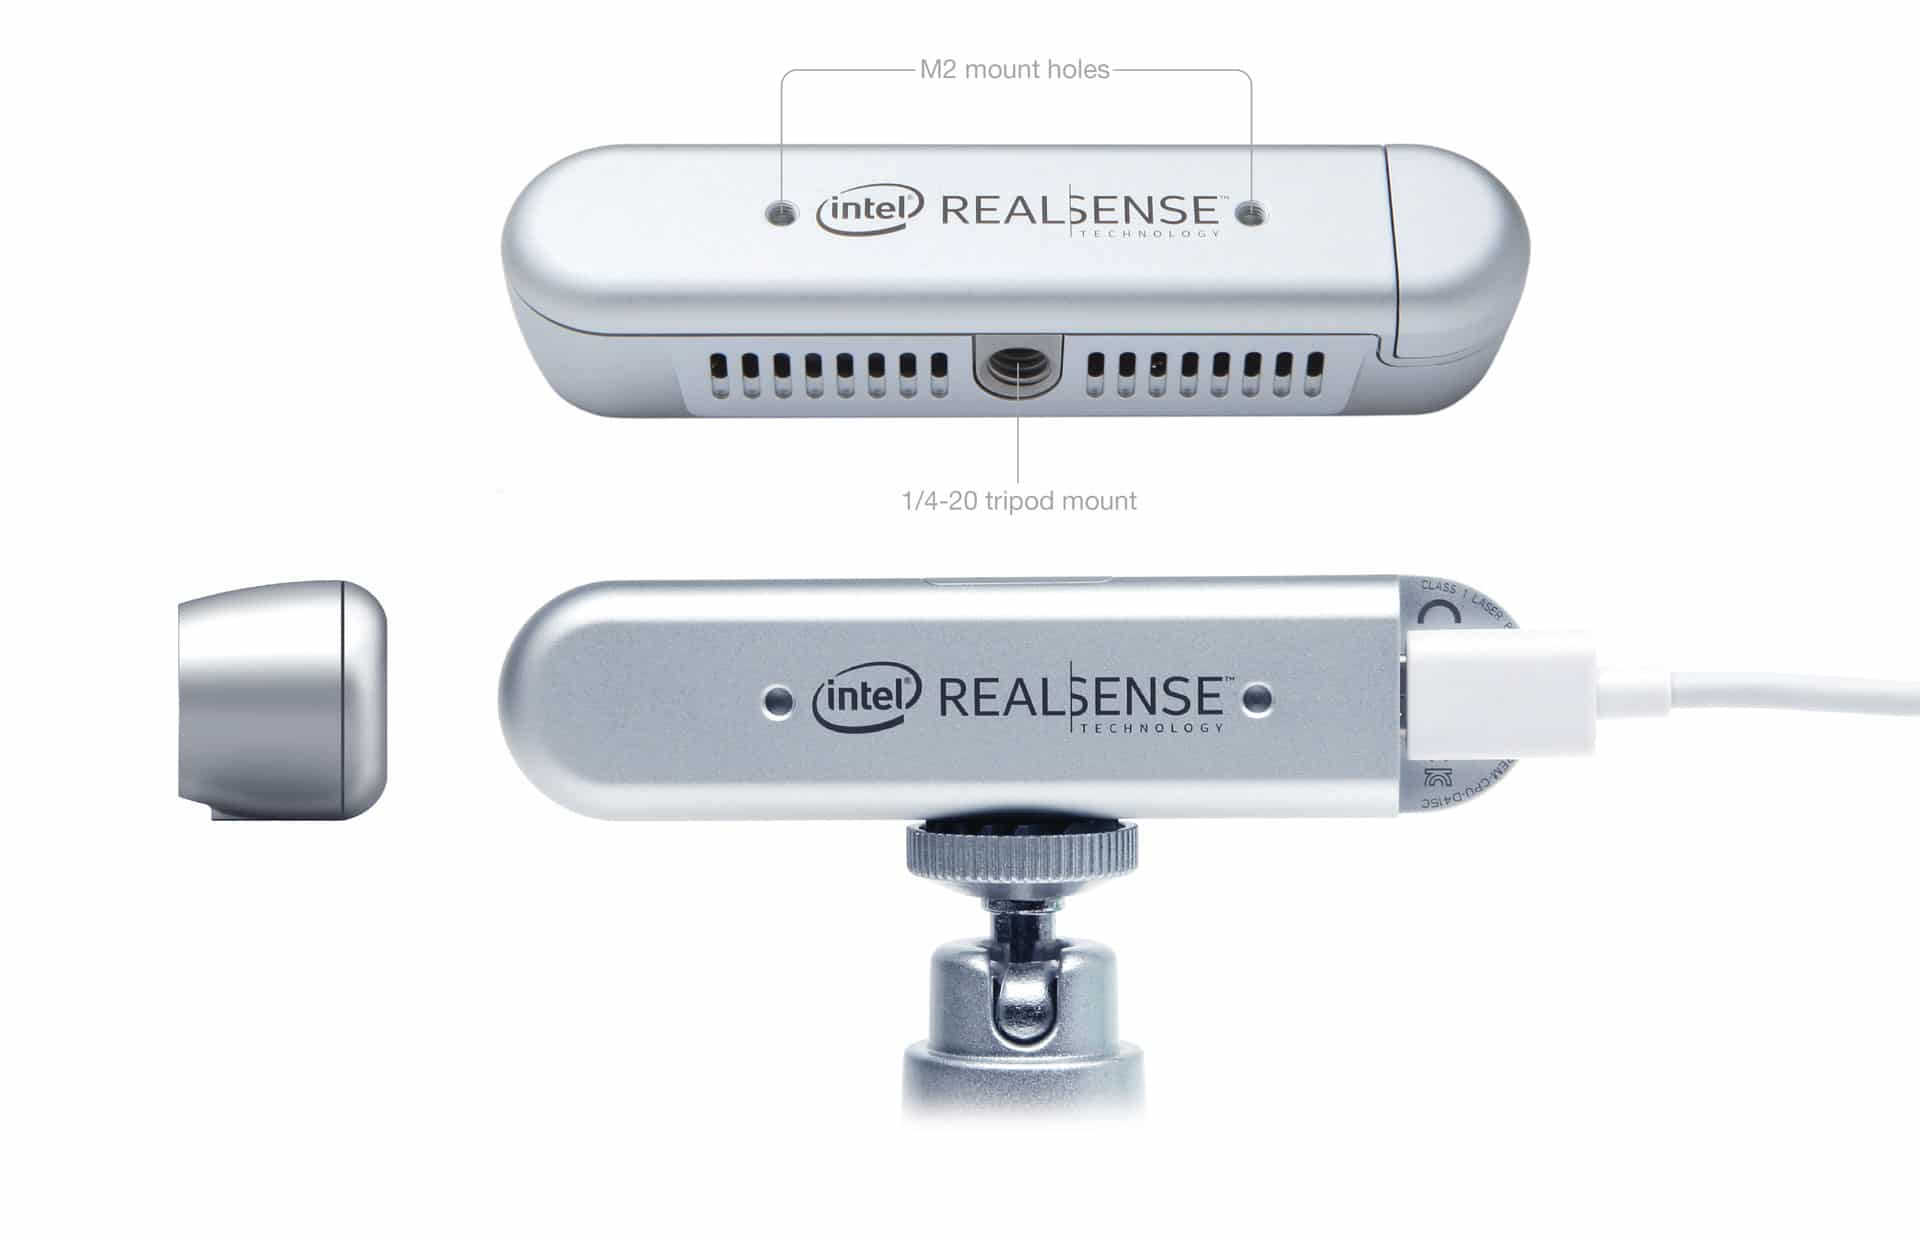 orthographic vies photo of the intel realsense universal mounting system